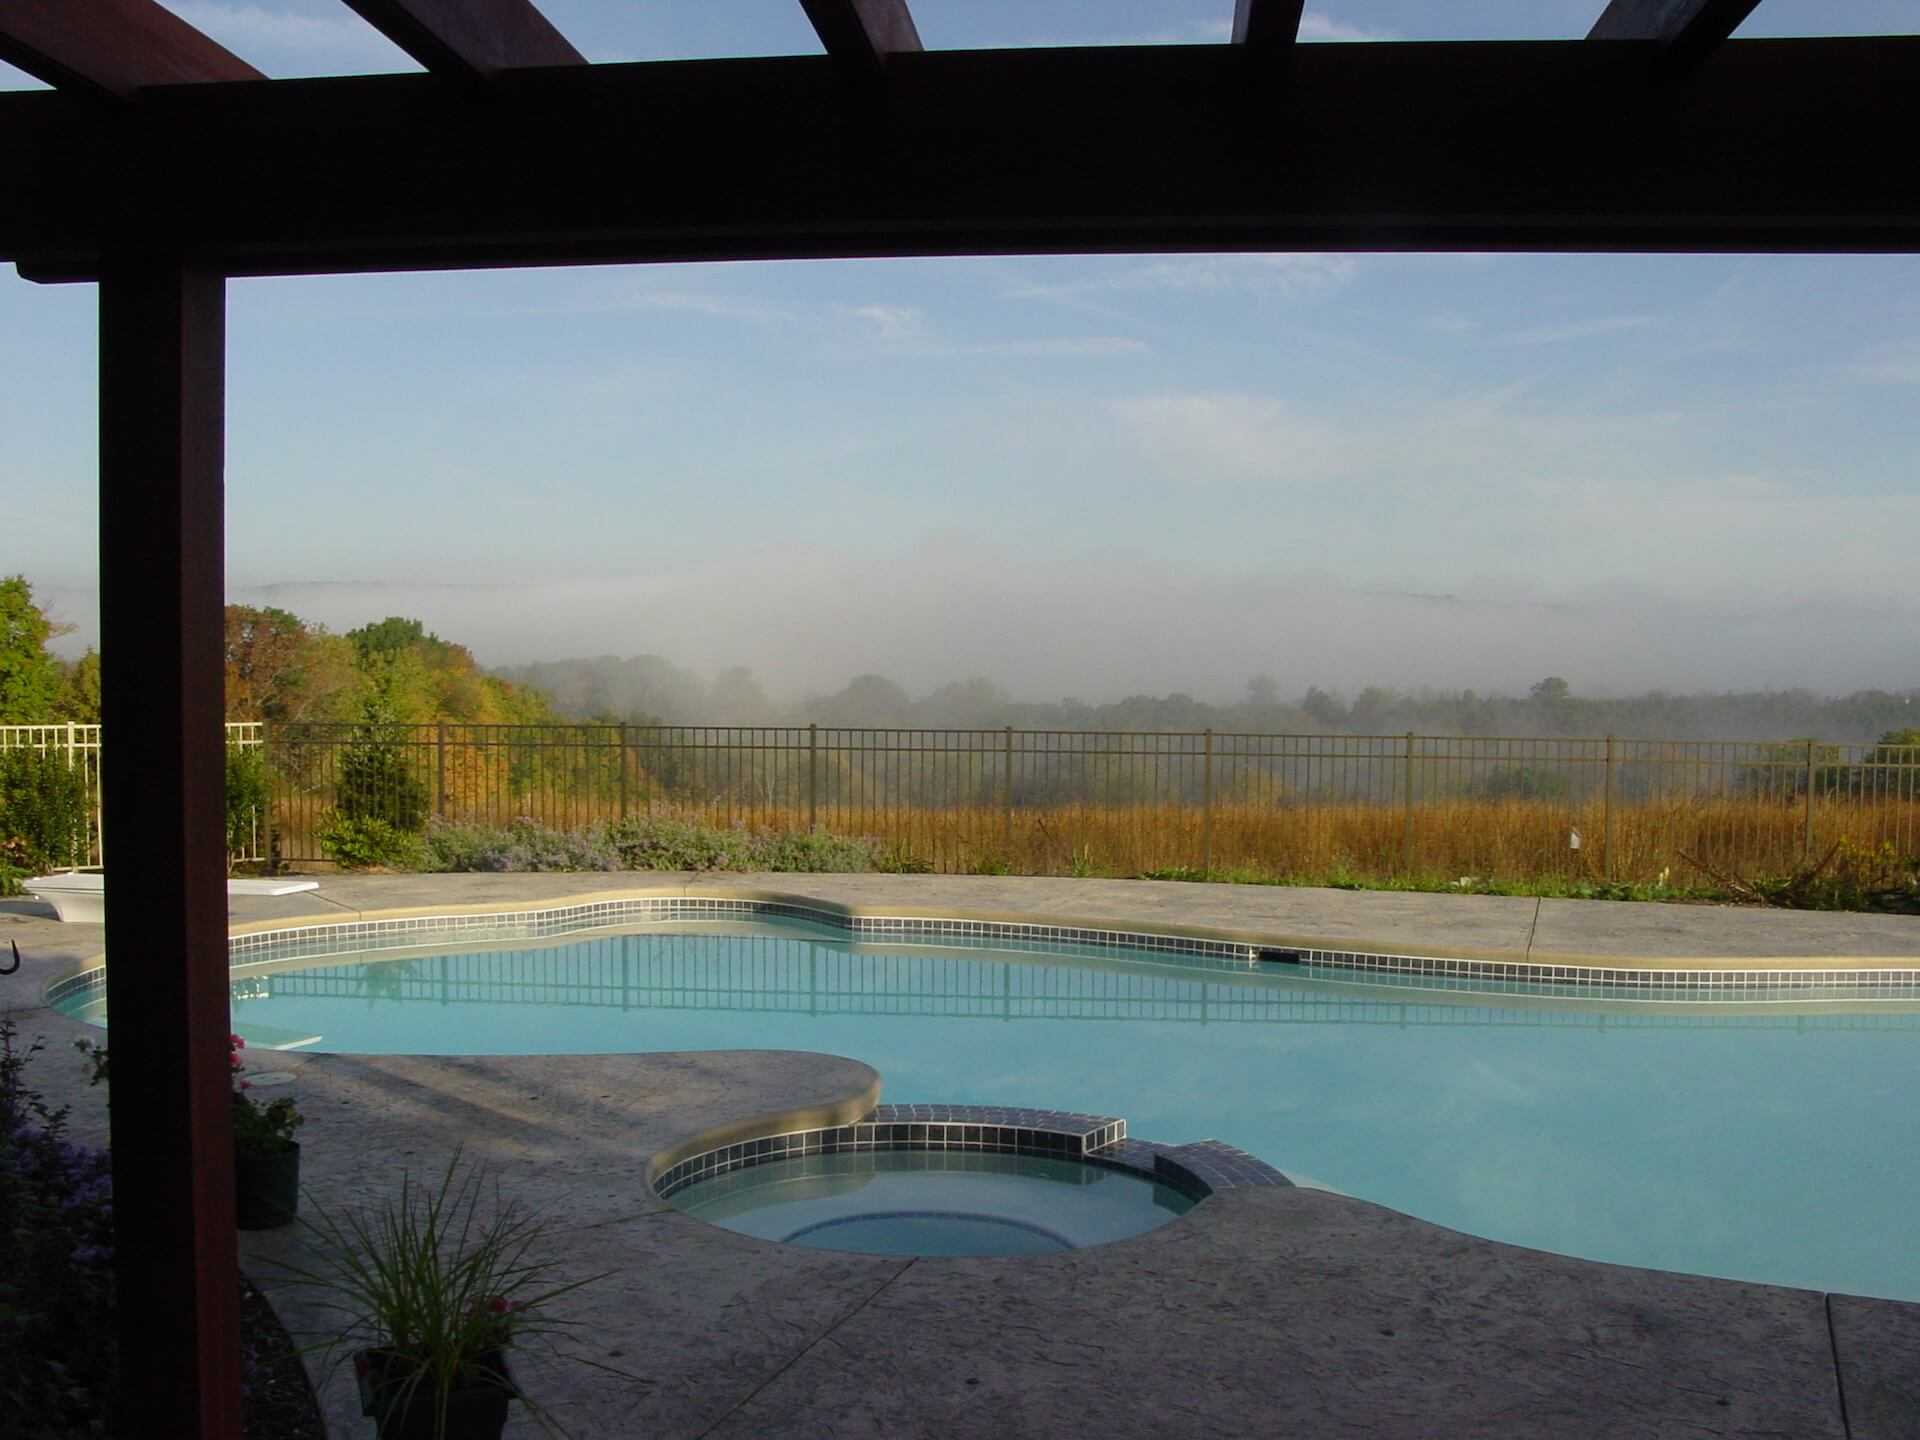 mist meadow behind the pool